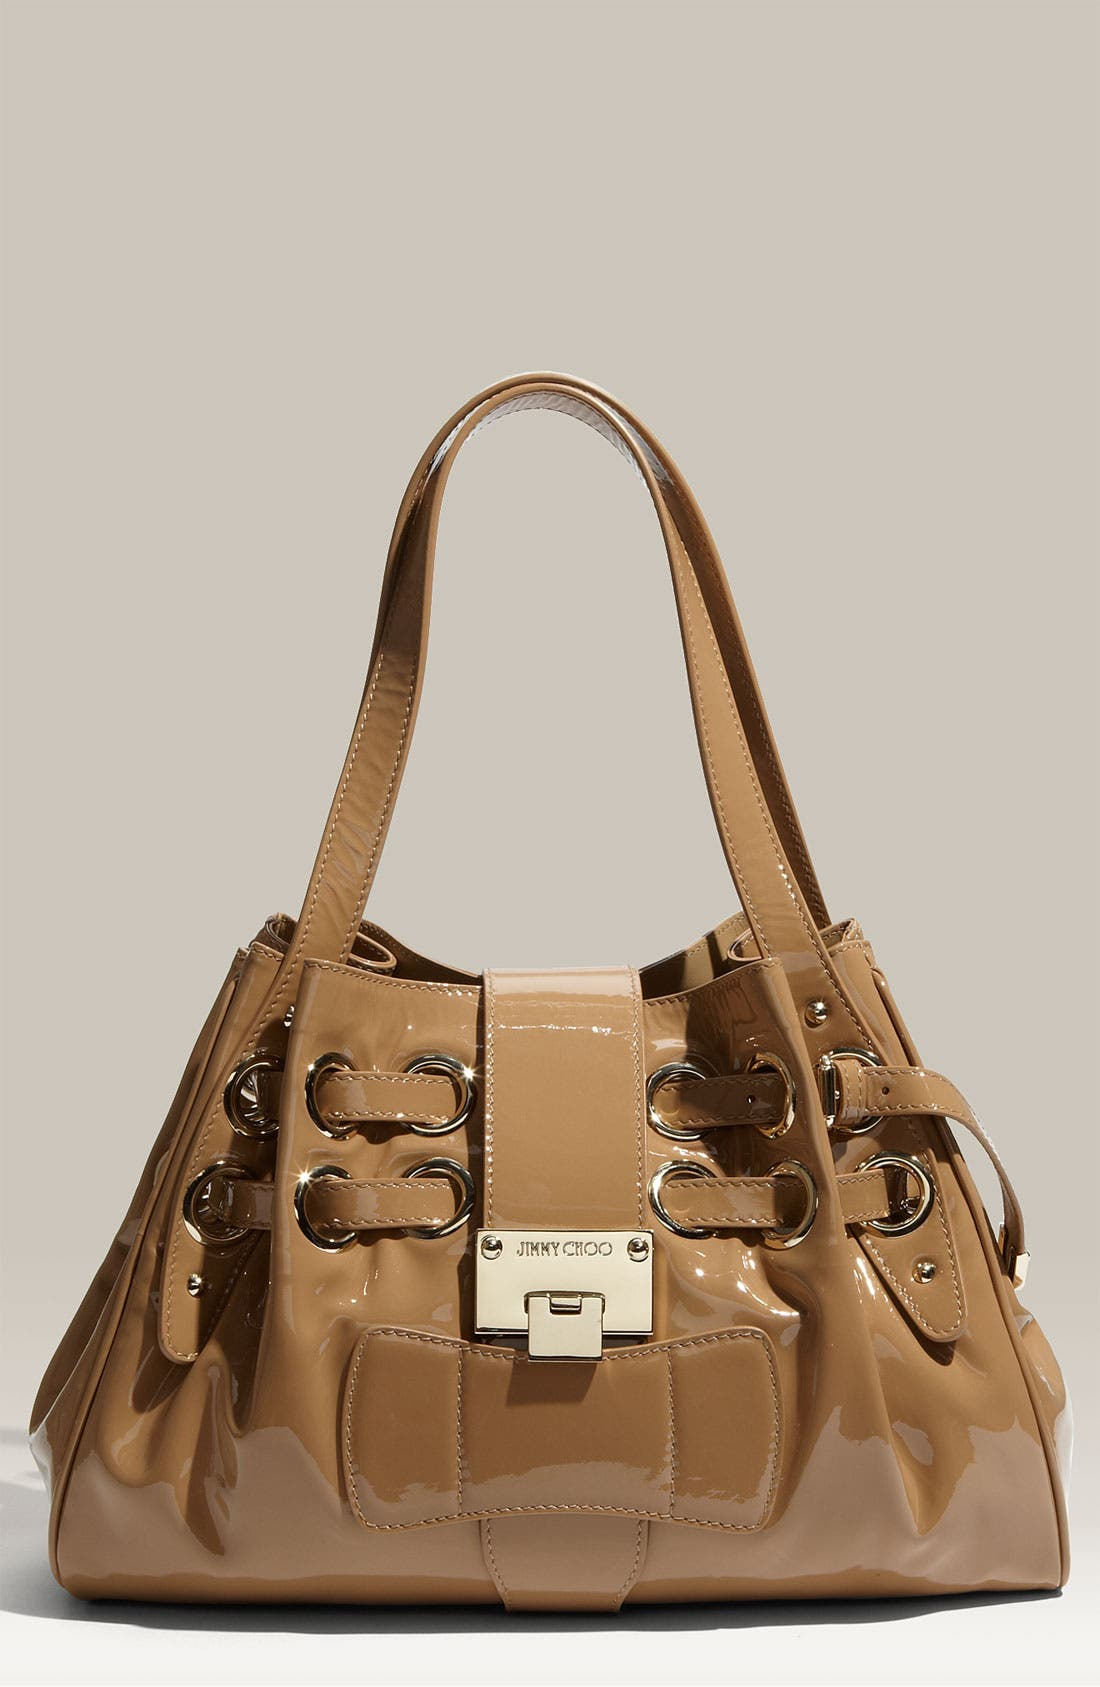 Alternate Image 1 Selected - Jimmy Choo 'Small' Patent Leather Shopper